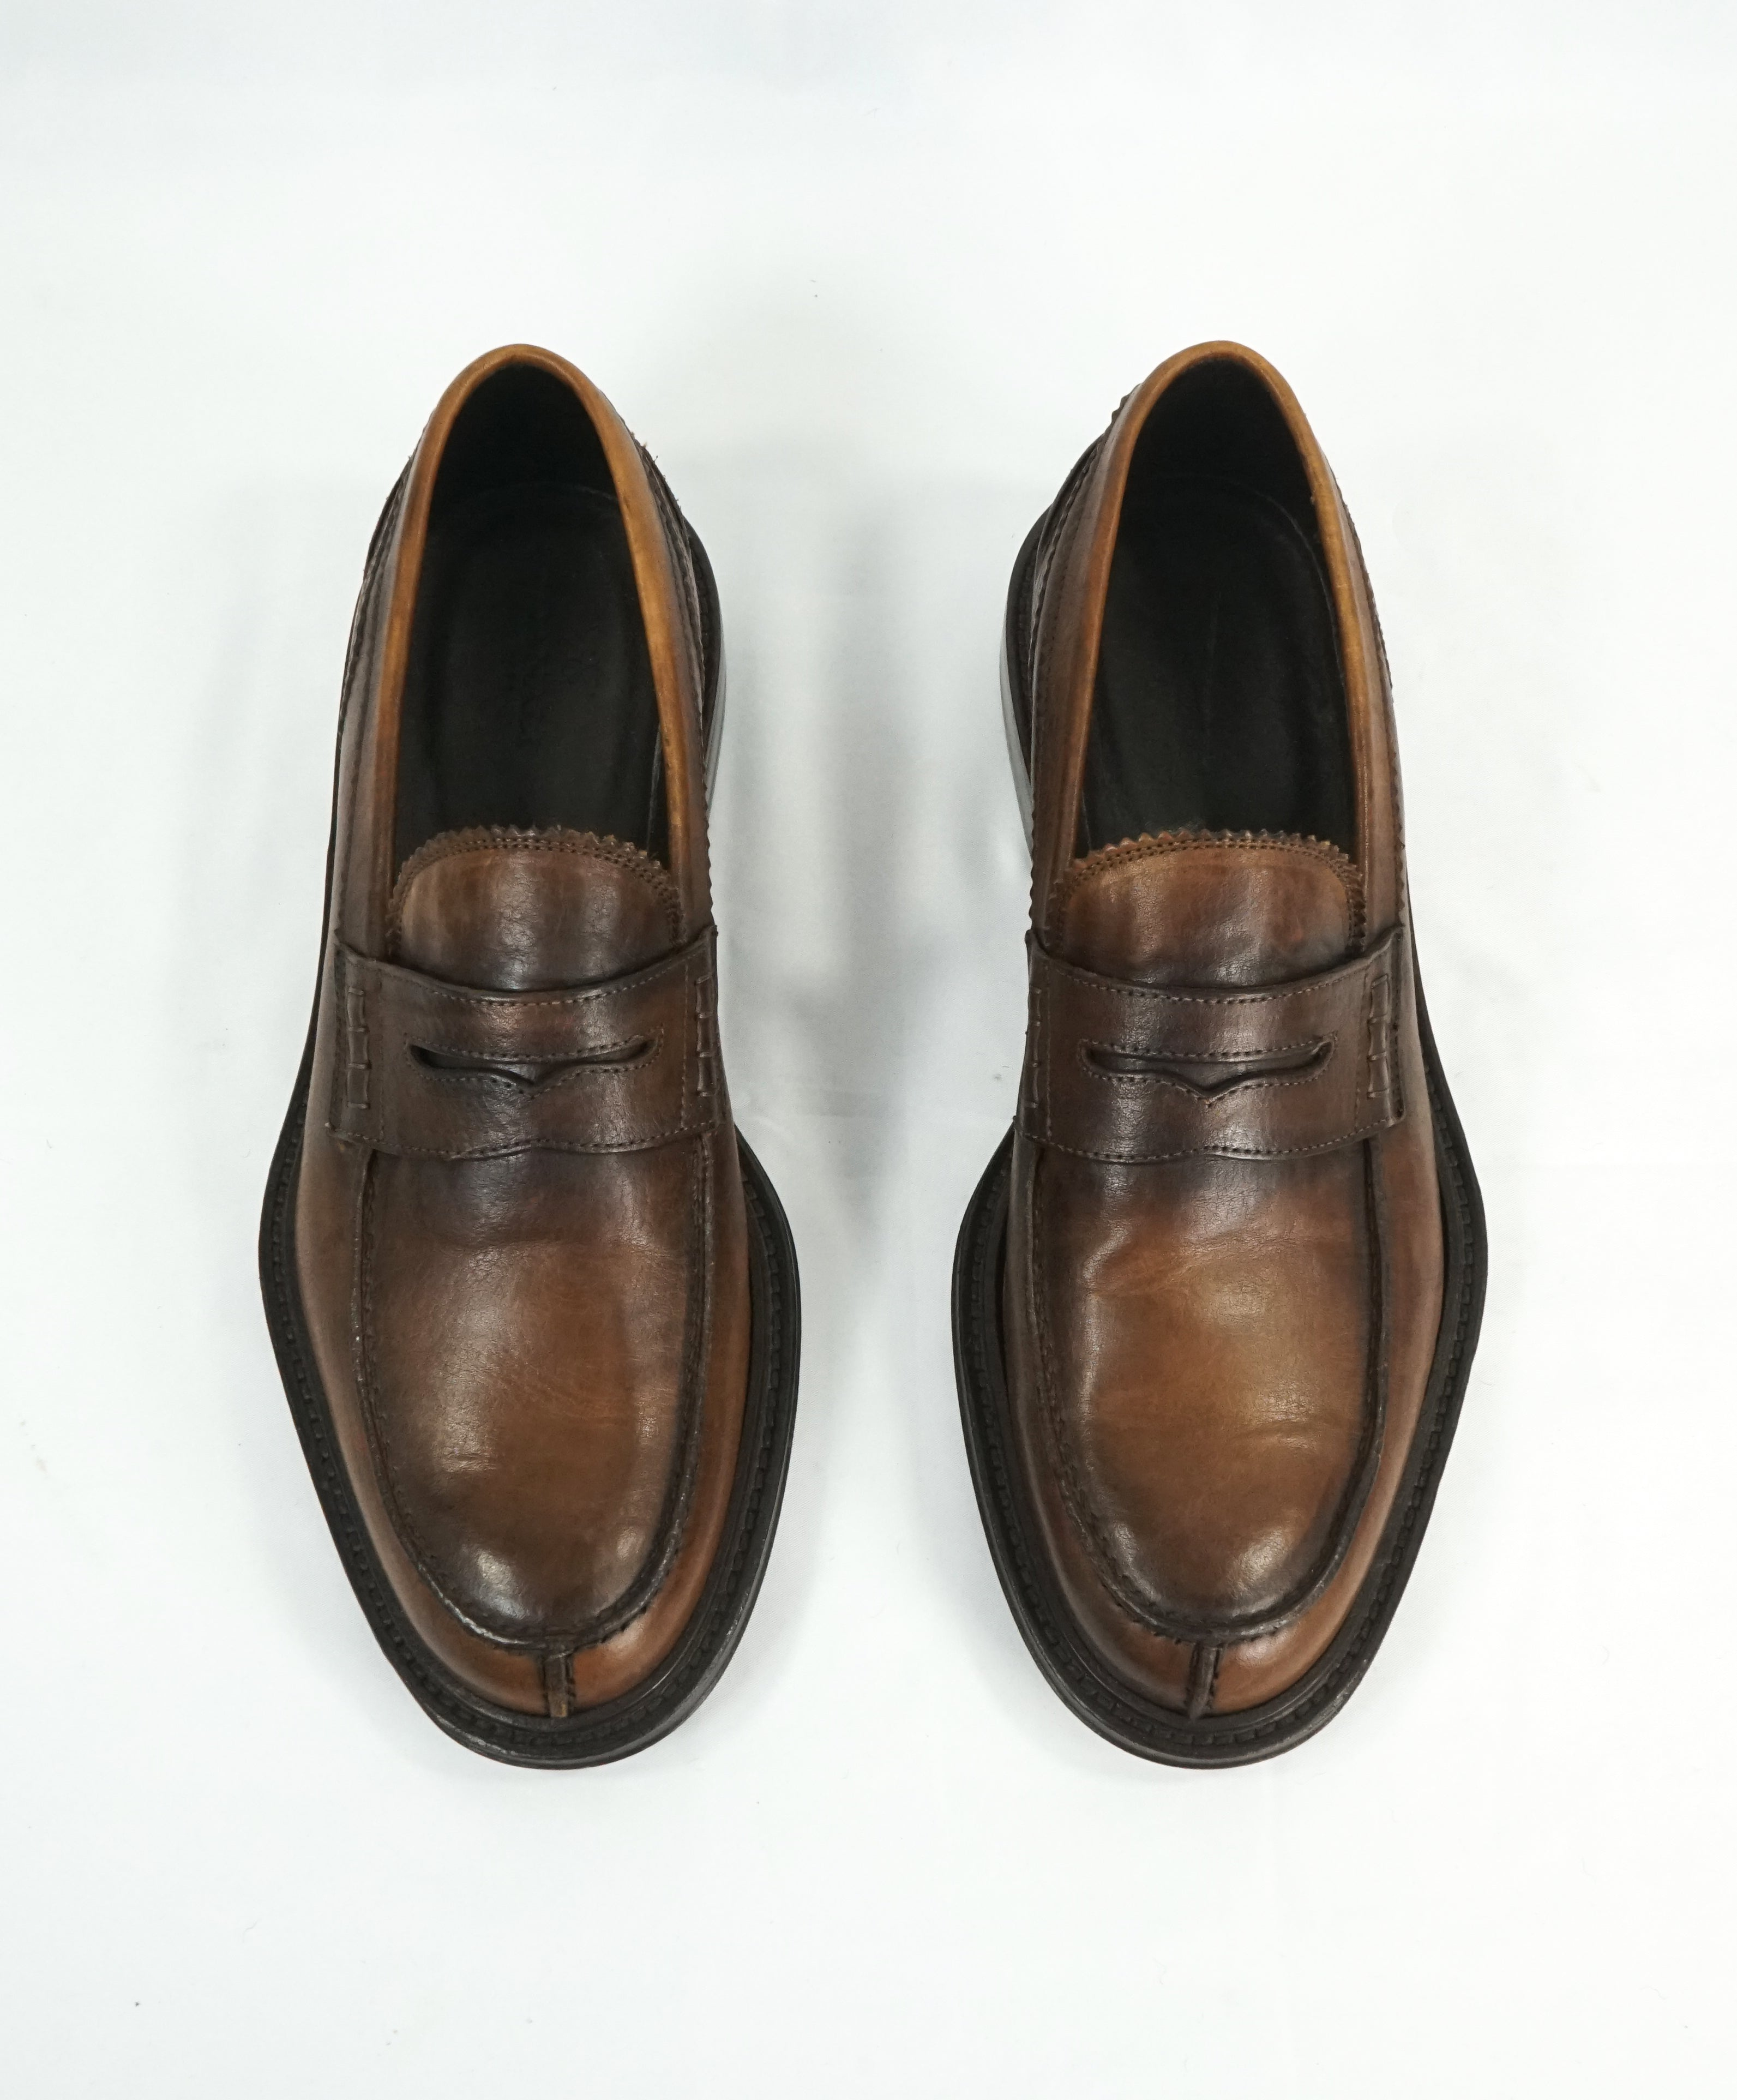 CANALI -  Hand Stitched Classic Leather Penny Loafers - 9